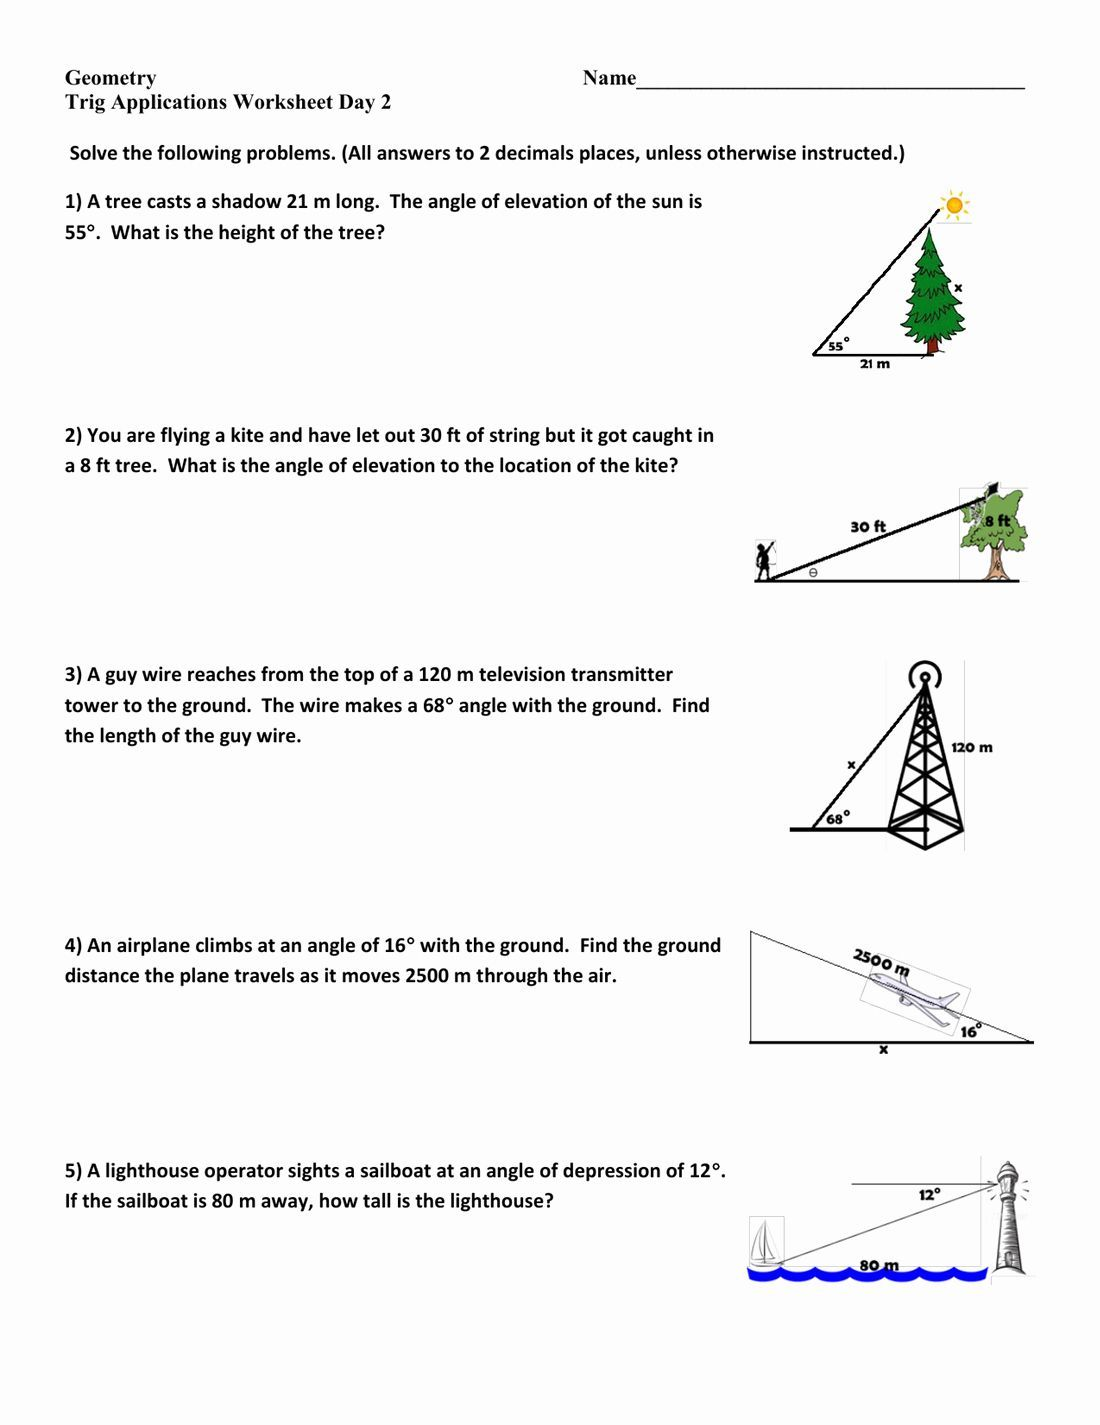 Right Triangle Trigonometry Worksheet Answers New Trigonometry Triangles Mechanical Electrical W Trigonometry Worksheets Word Problem Worksheets Right Triangle